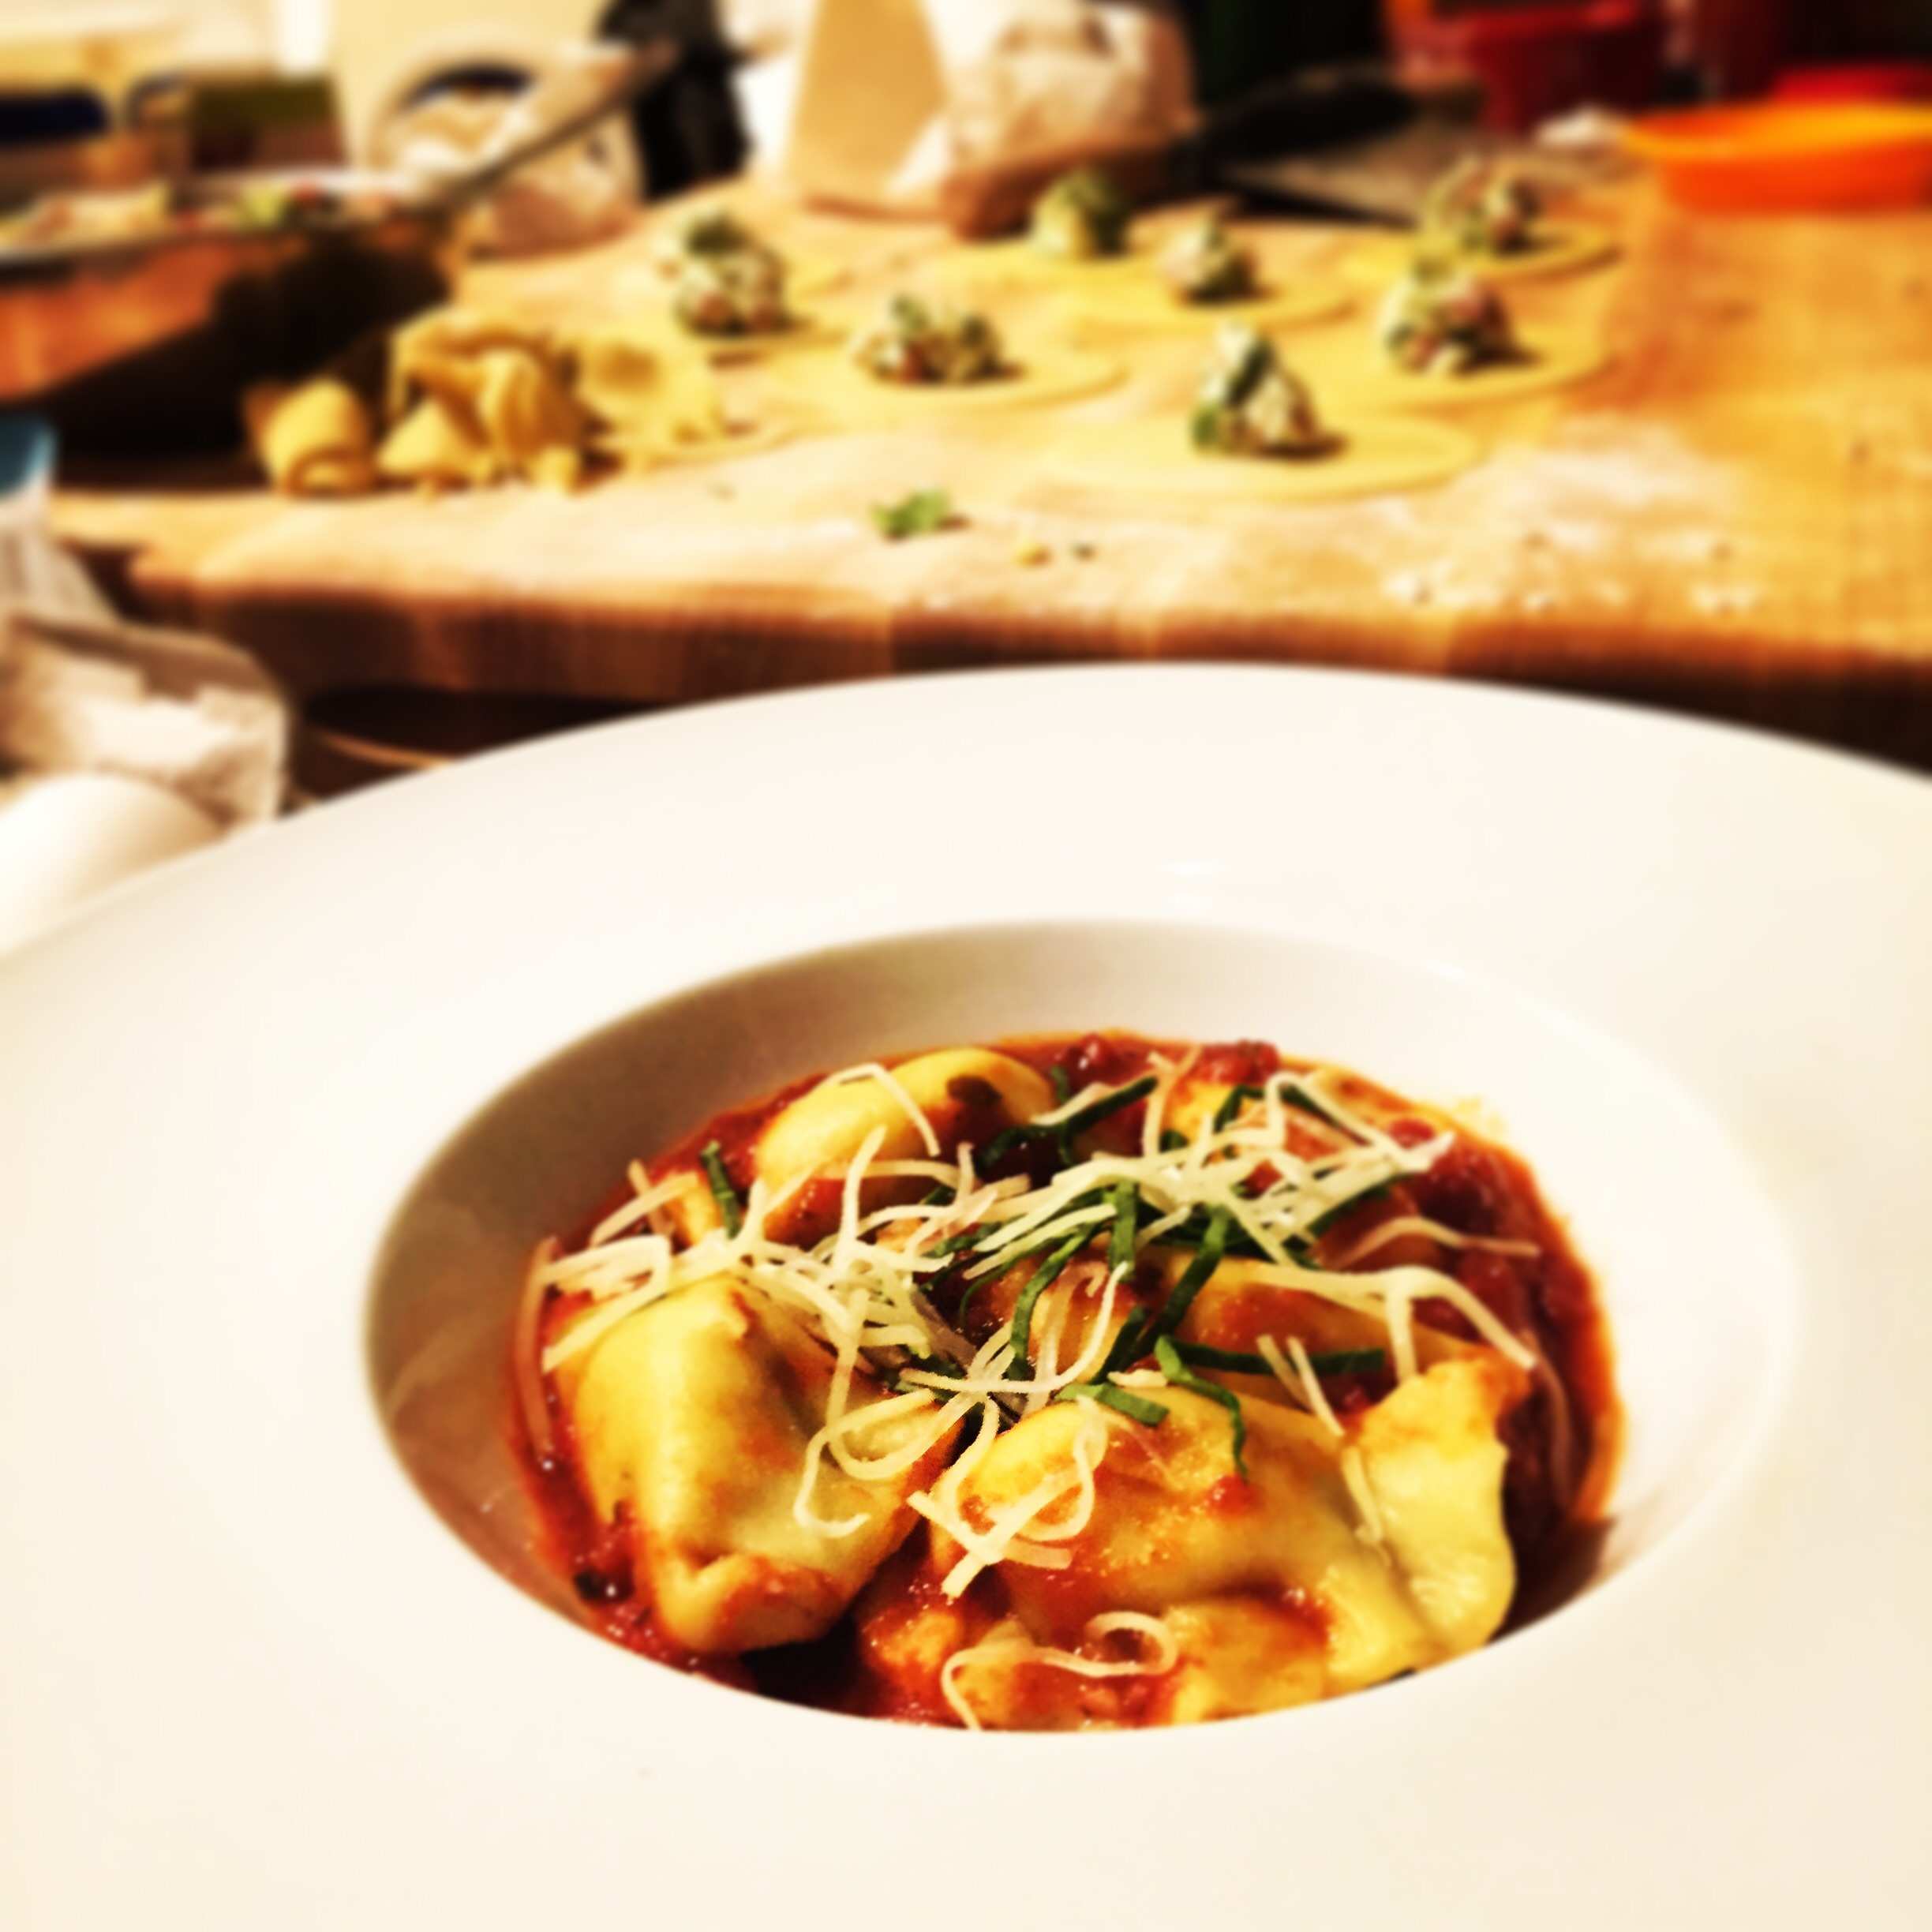 {Gluten free ravioli stuffed with spinach ricotta and prosciutto served in a simple tomato sauce}